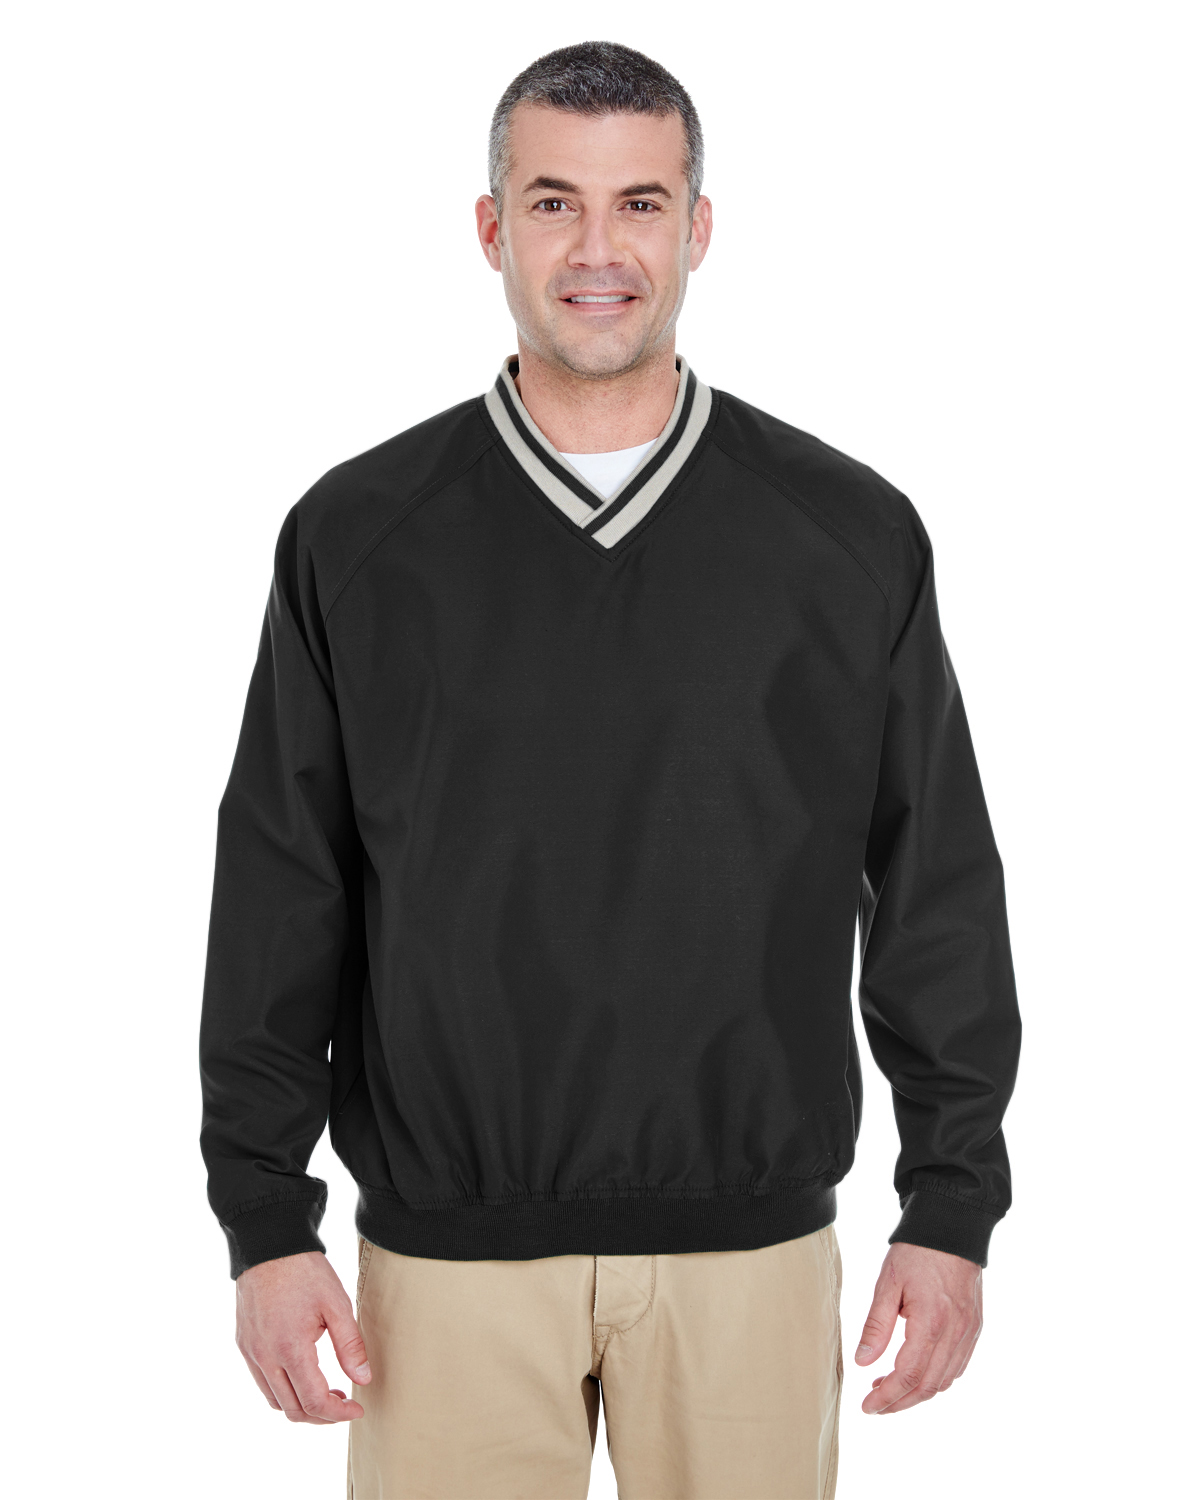 UltraClub 8926-Adult Long-Sleeve Microfiber Cross-Over ...